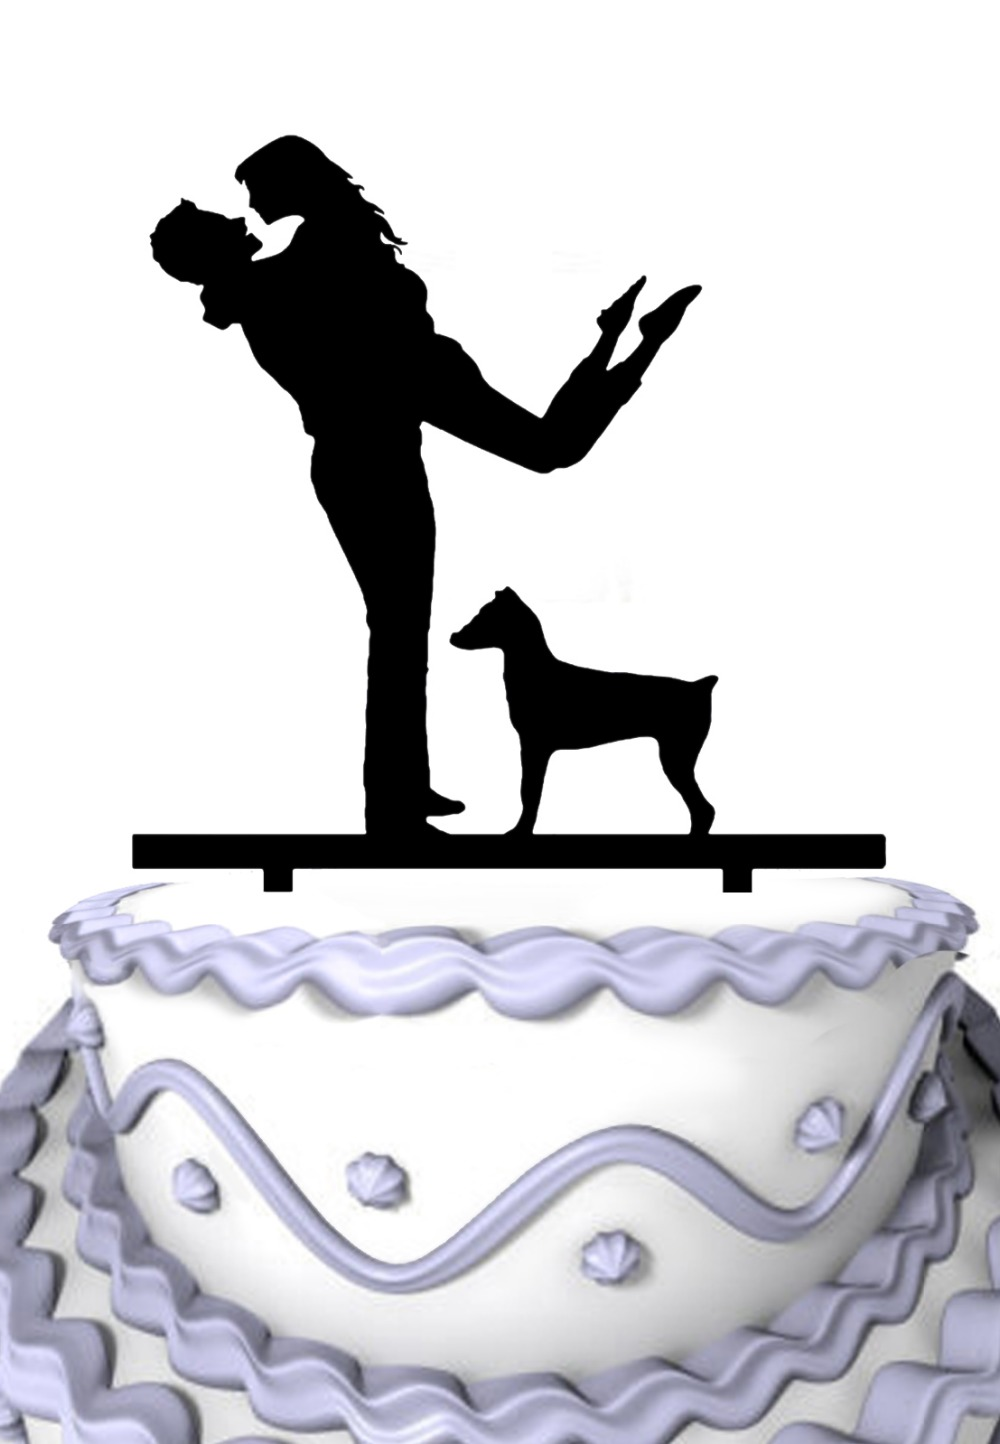 Custom Wedding Cake Topper-Husband Folding Happy Wife with Tame Dog Silhouette Anniversary Cake Topper(China (Mainland))